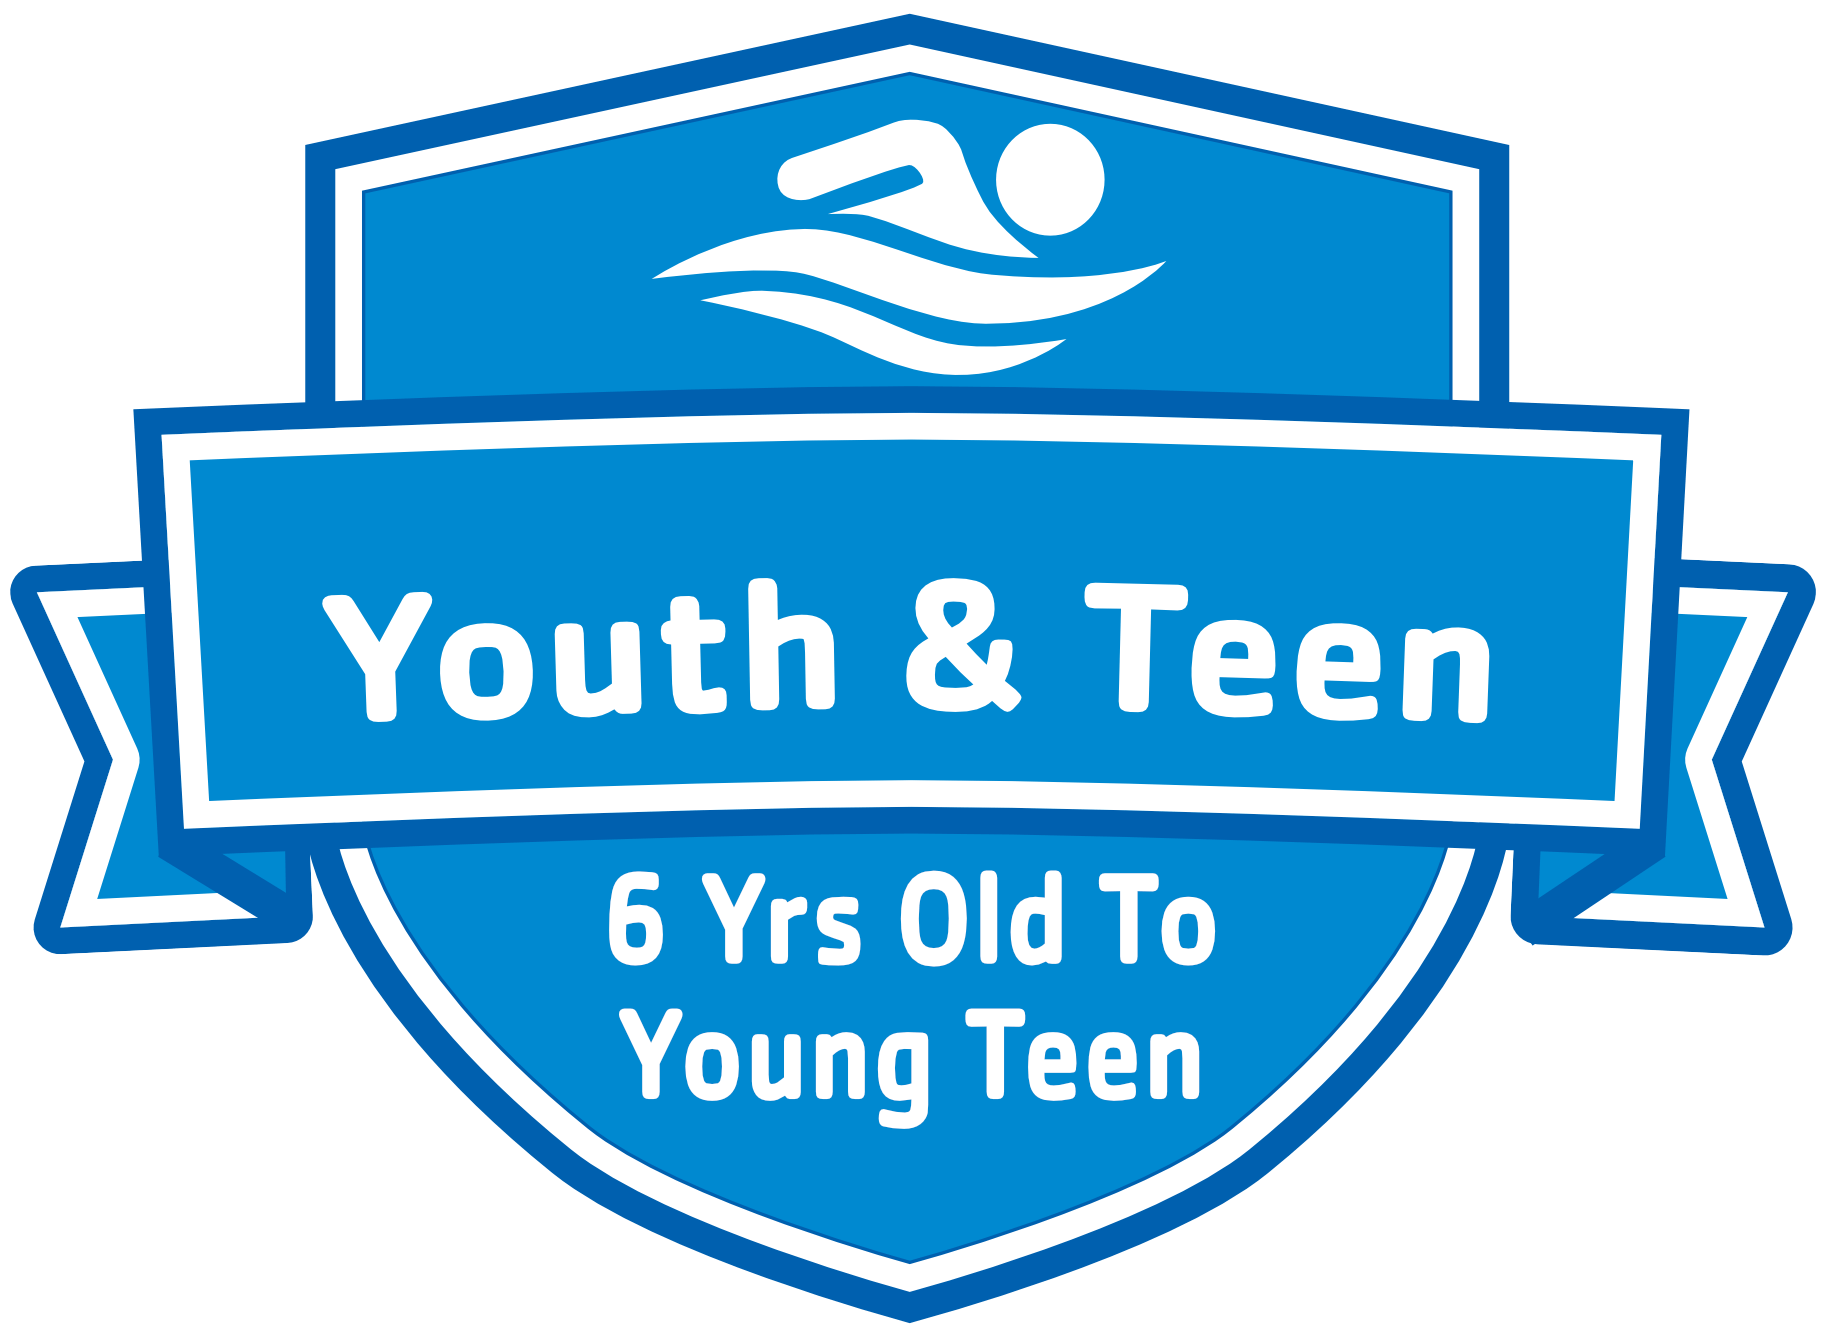 Youth and Teen